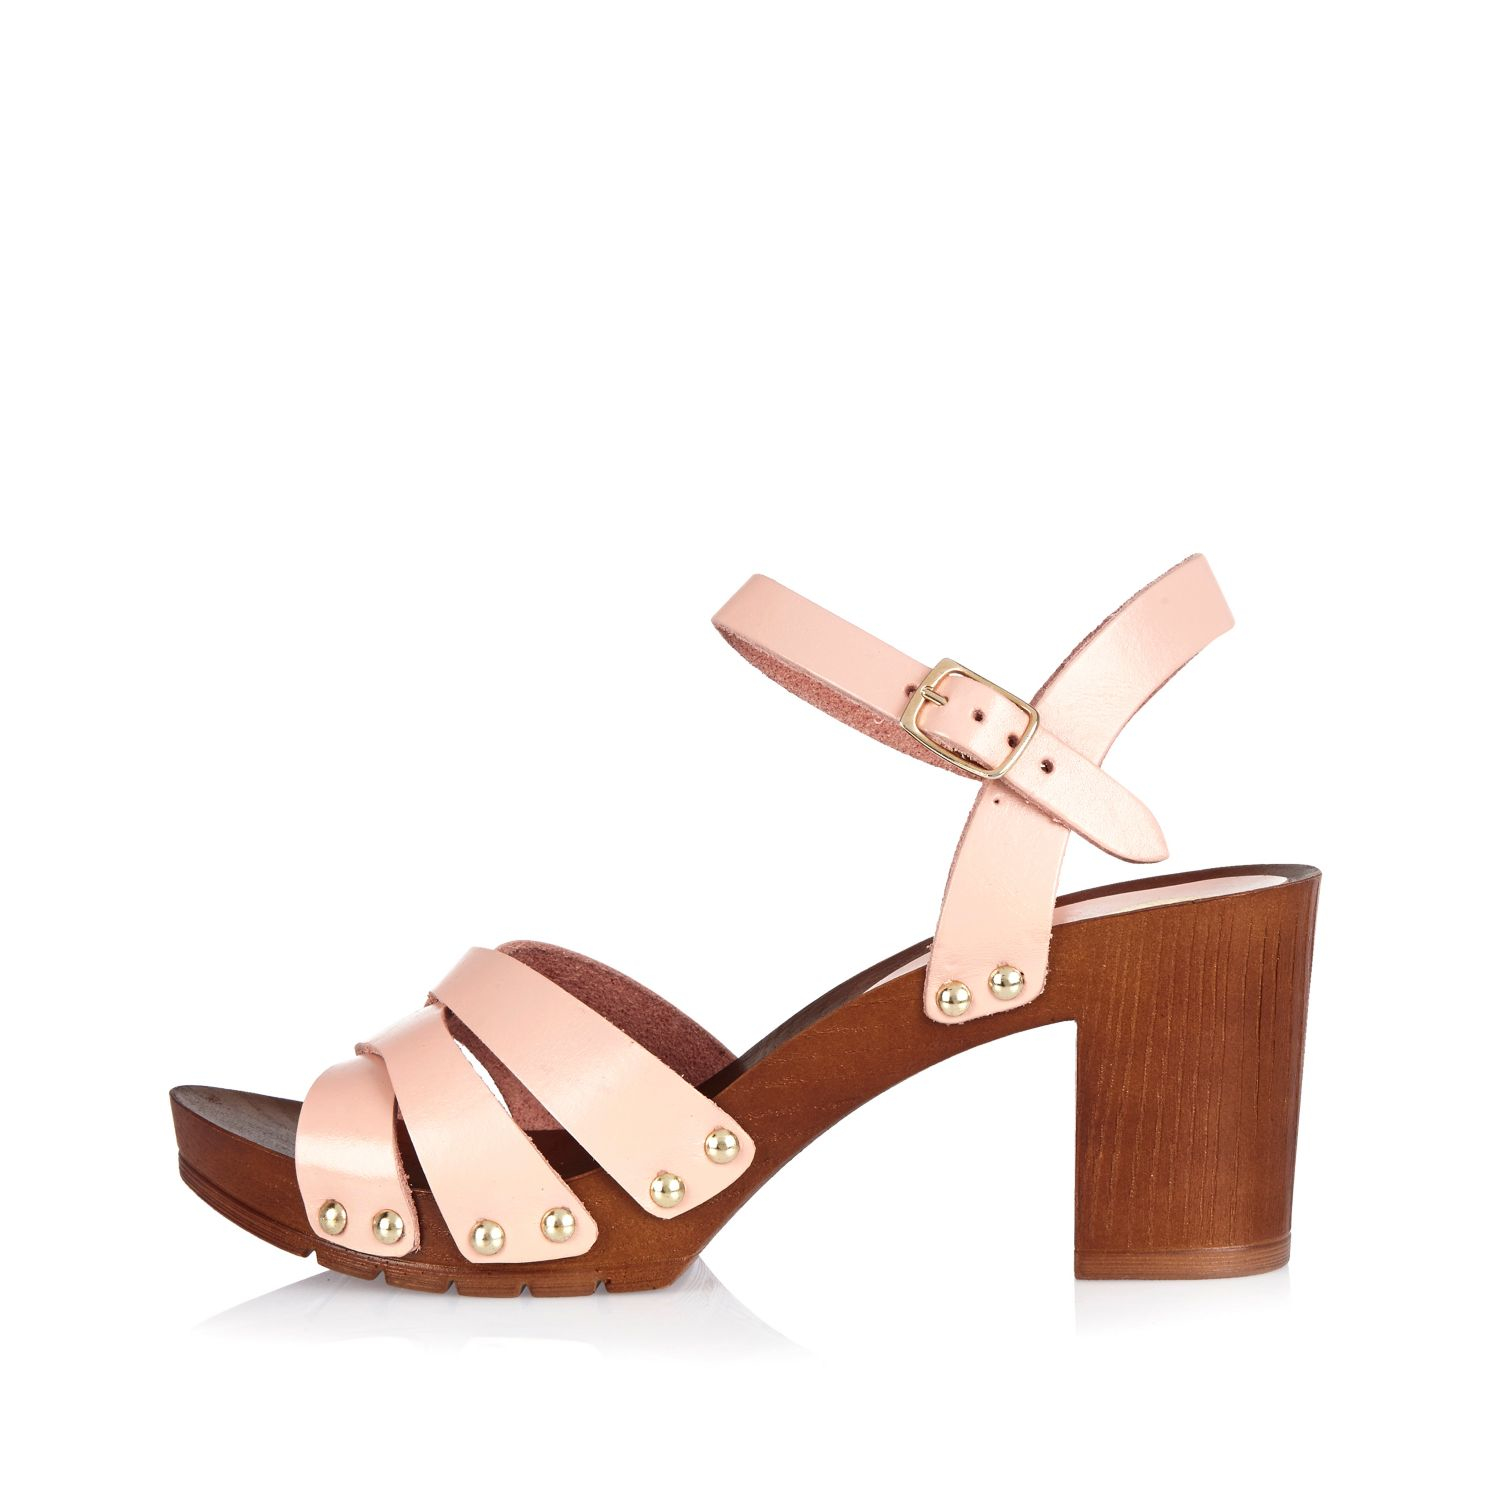 99bed2eba7 River Island Pink Leather Clog Sandals in Pink - Lyst